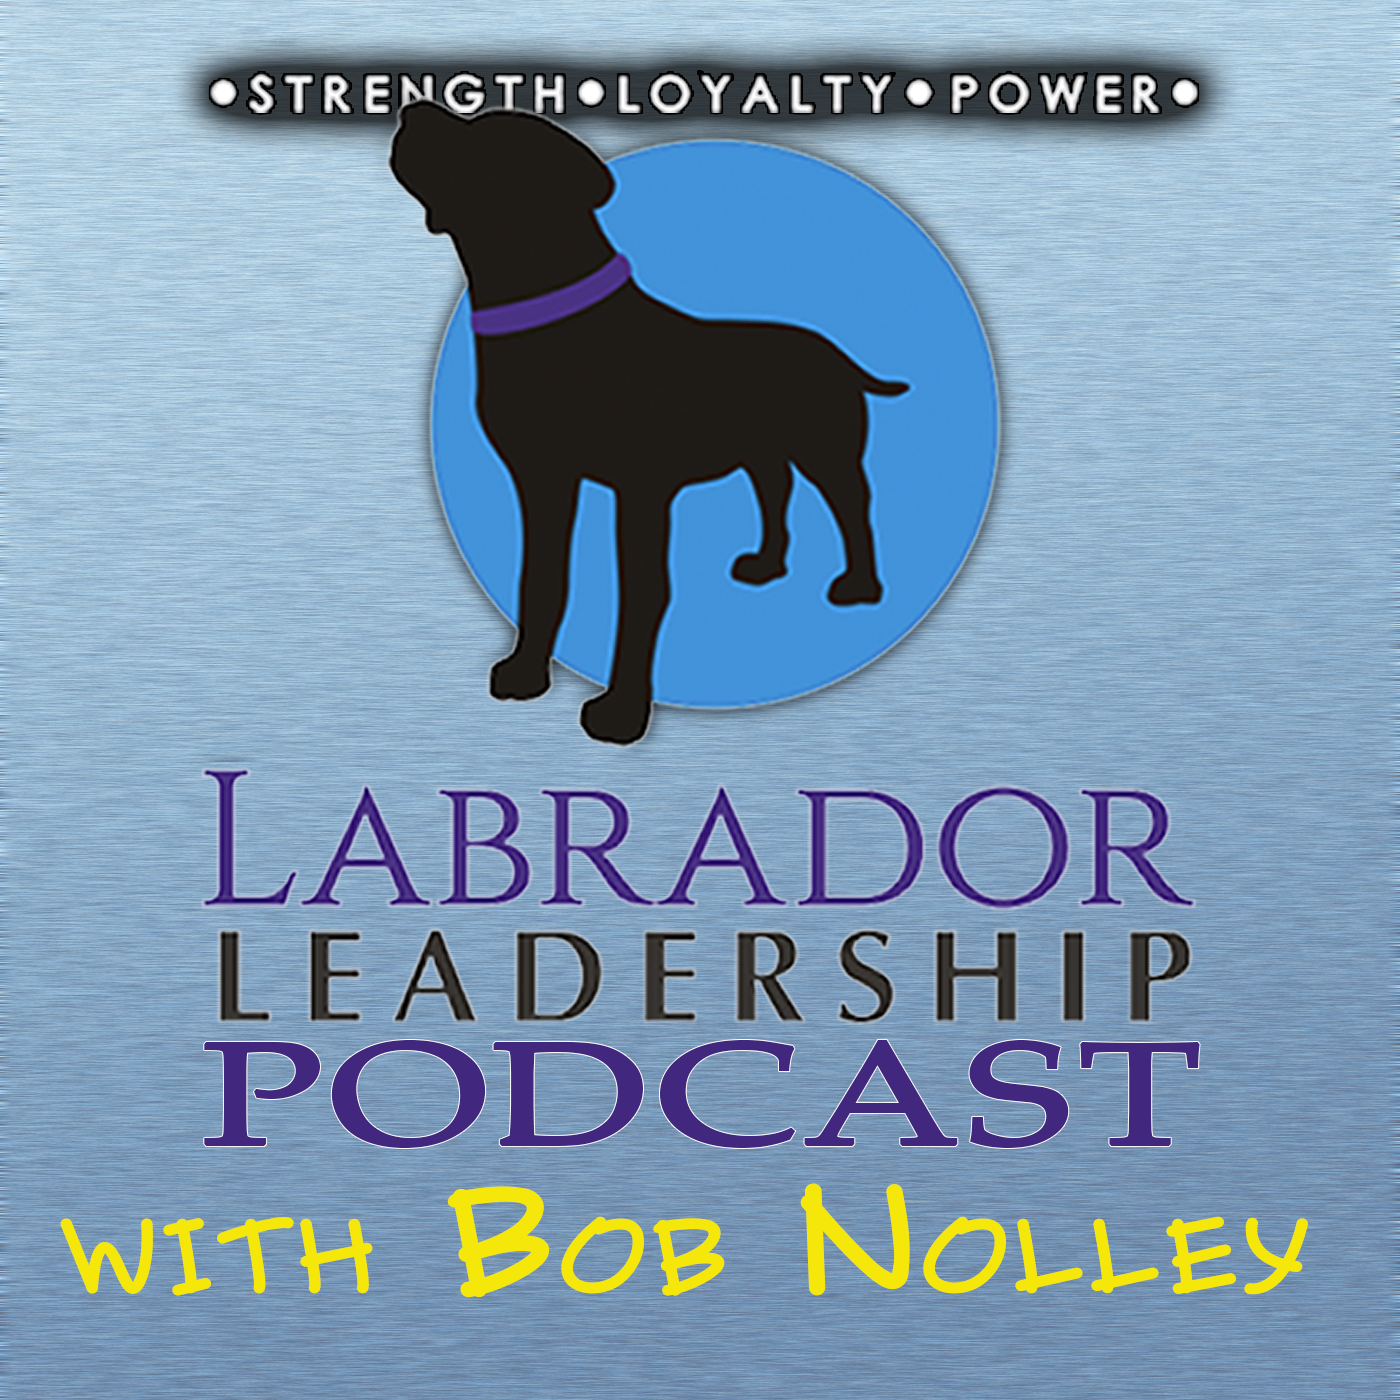 The Labrador Leadership Podcast with Bob Nolley | Leadership | Communication | Executive Coaching | Leadership Skills